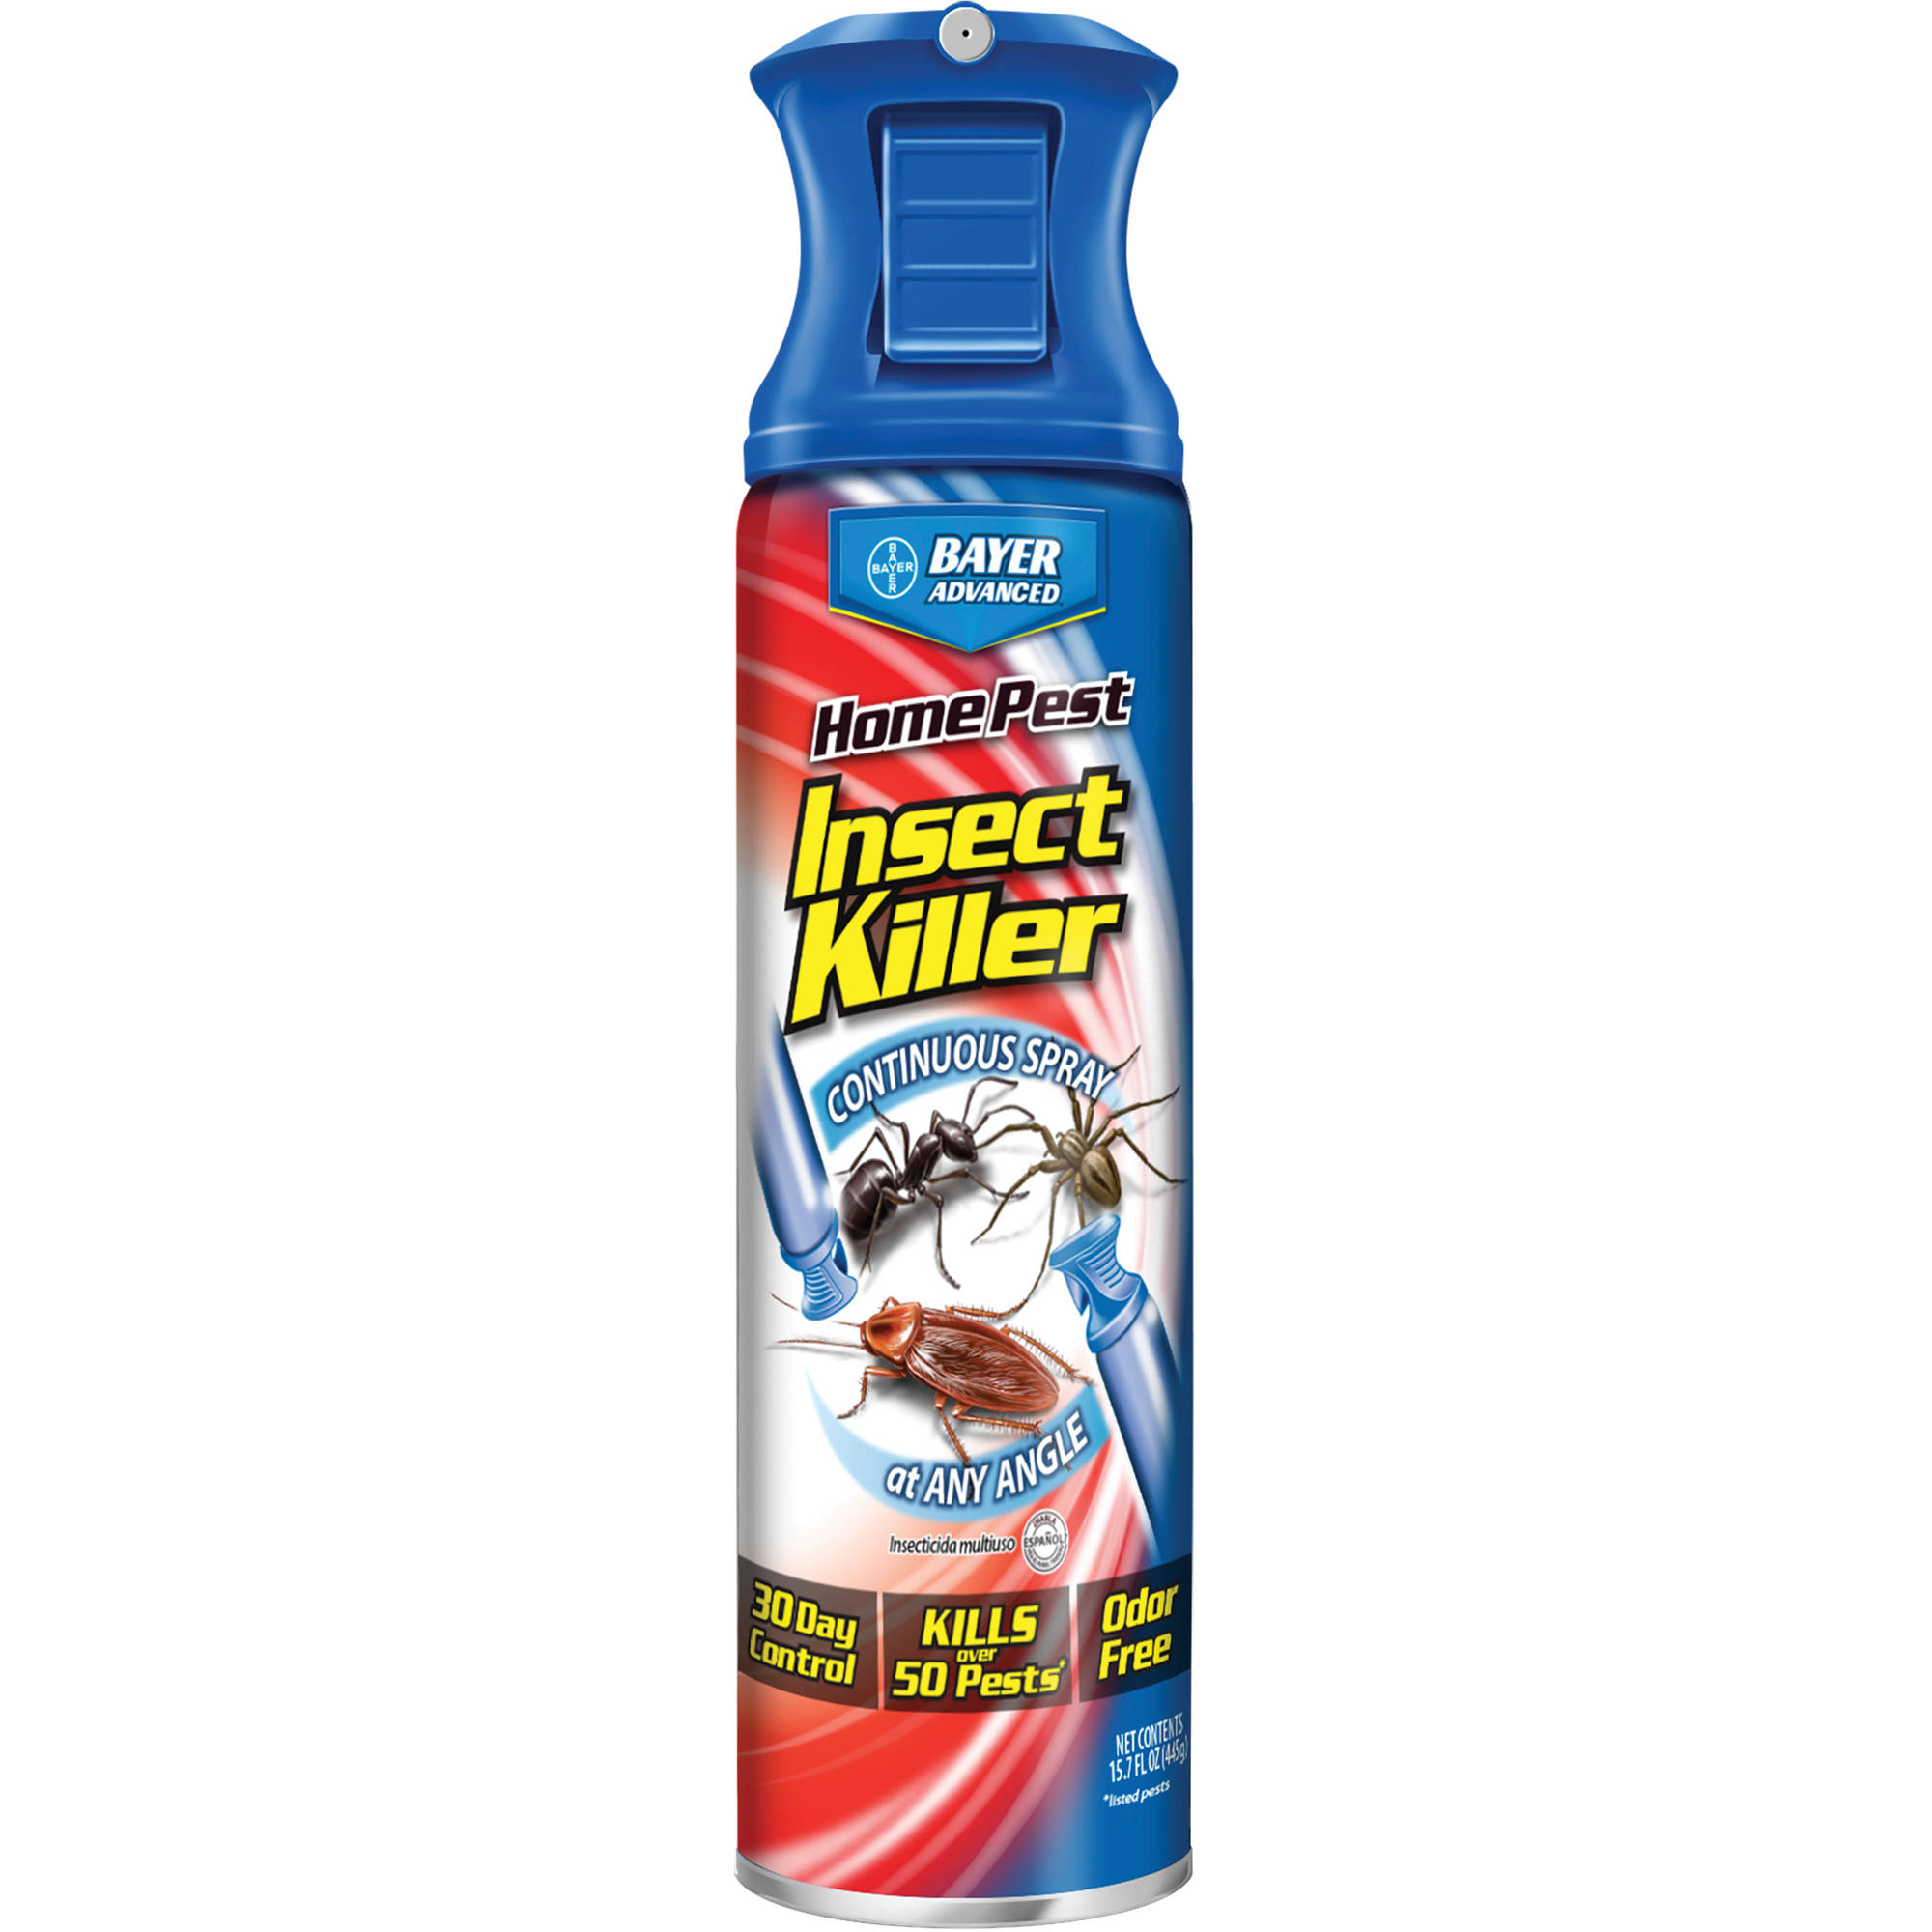 Bayer Home Pest Insect Killer, 15 oz